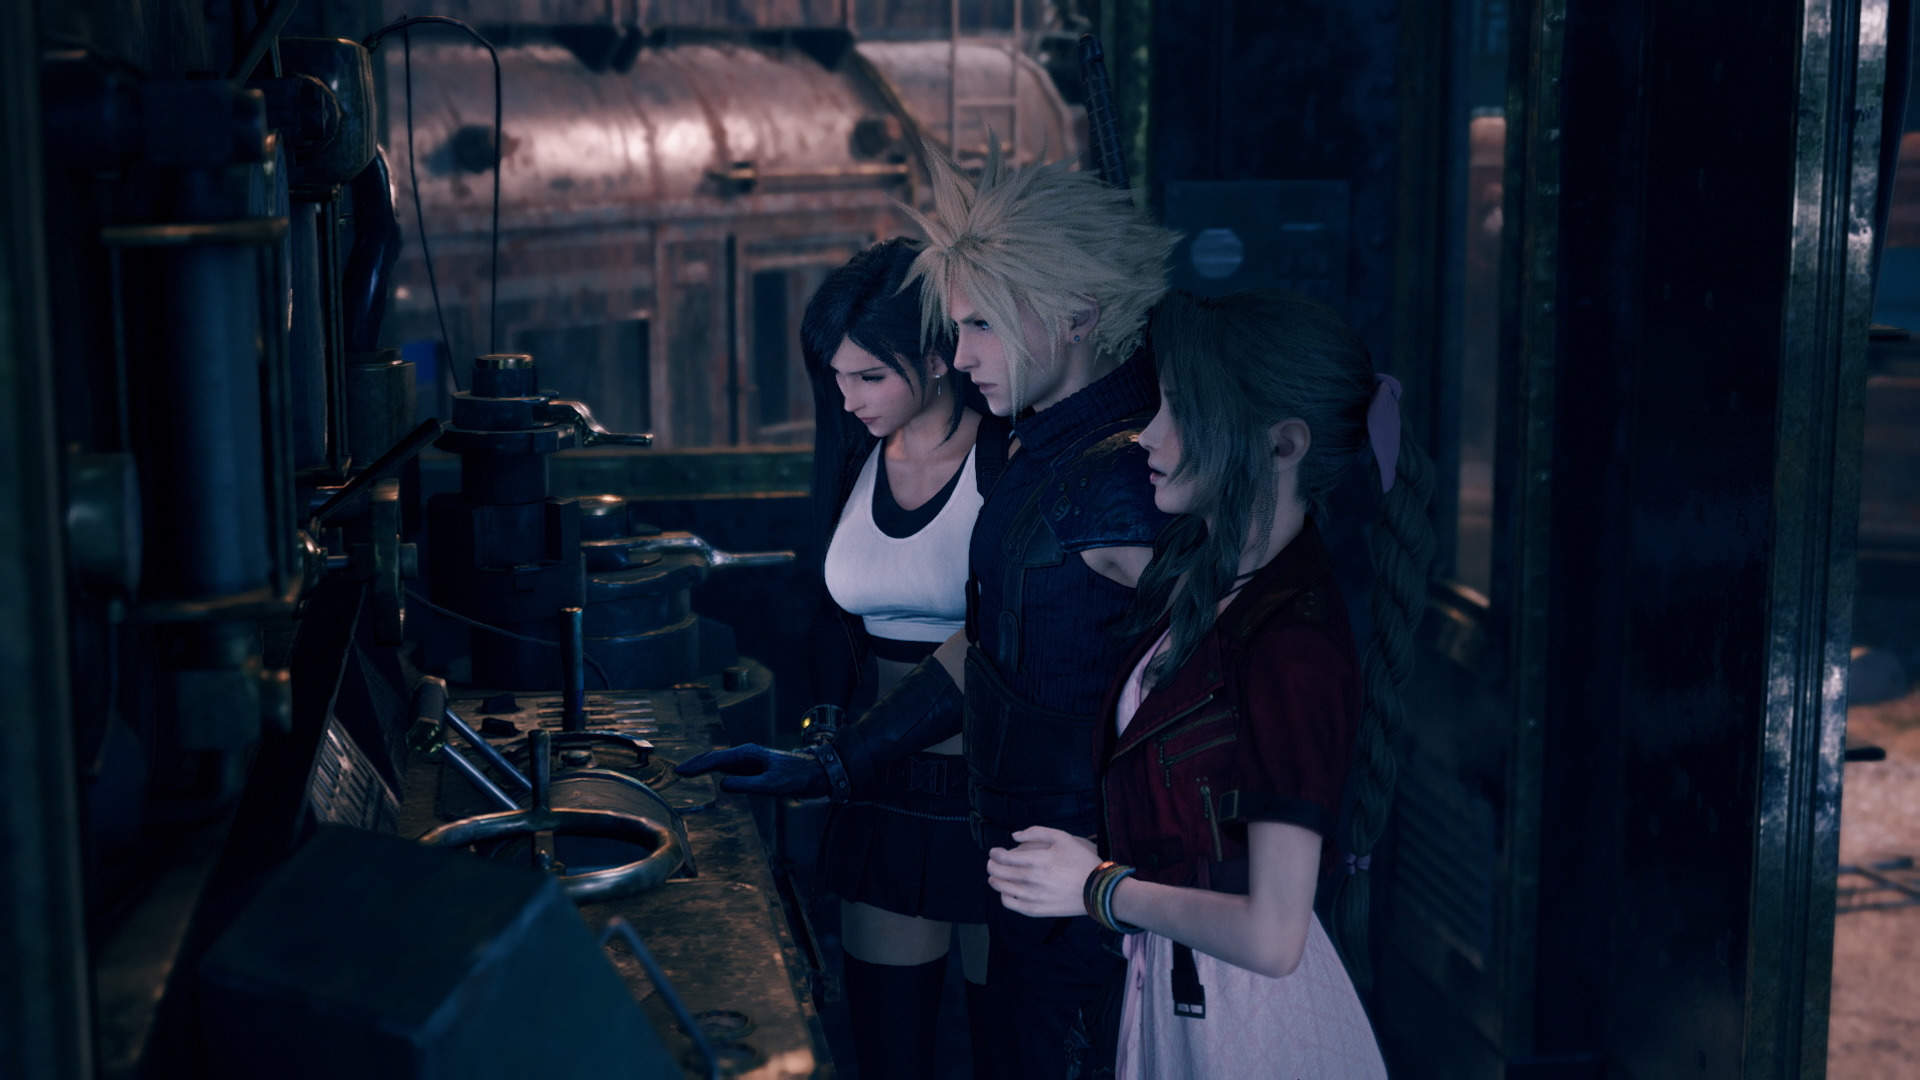 Final Fantasy VII's Iconic Train Graveyard Scene Is Recreated In Breathtaking Detail In Final Fantasy VII Remake